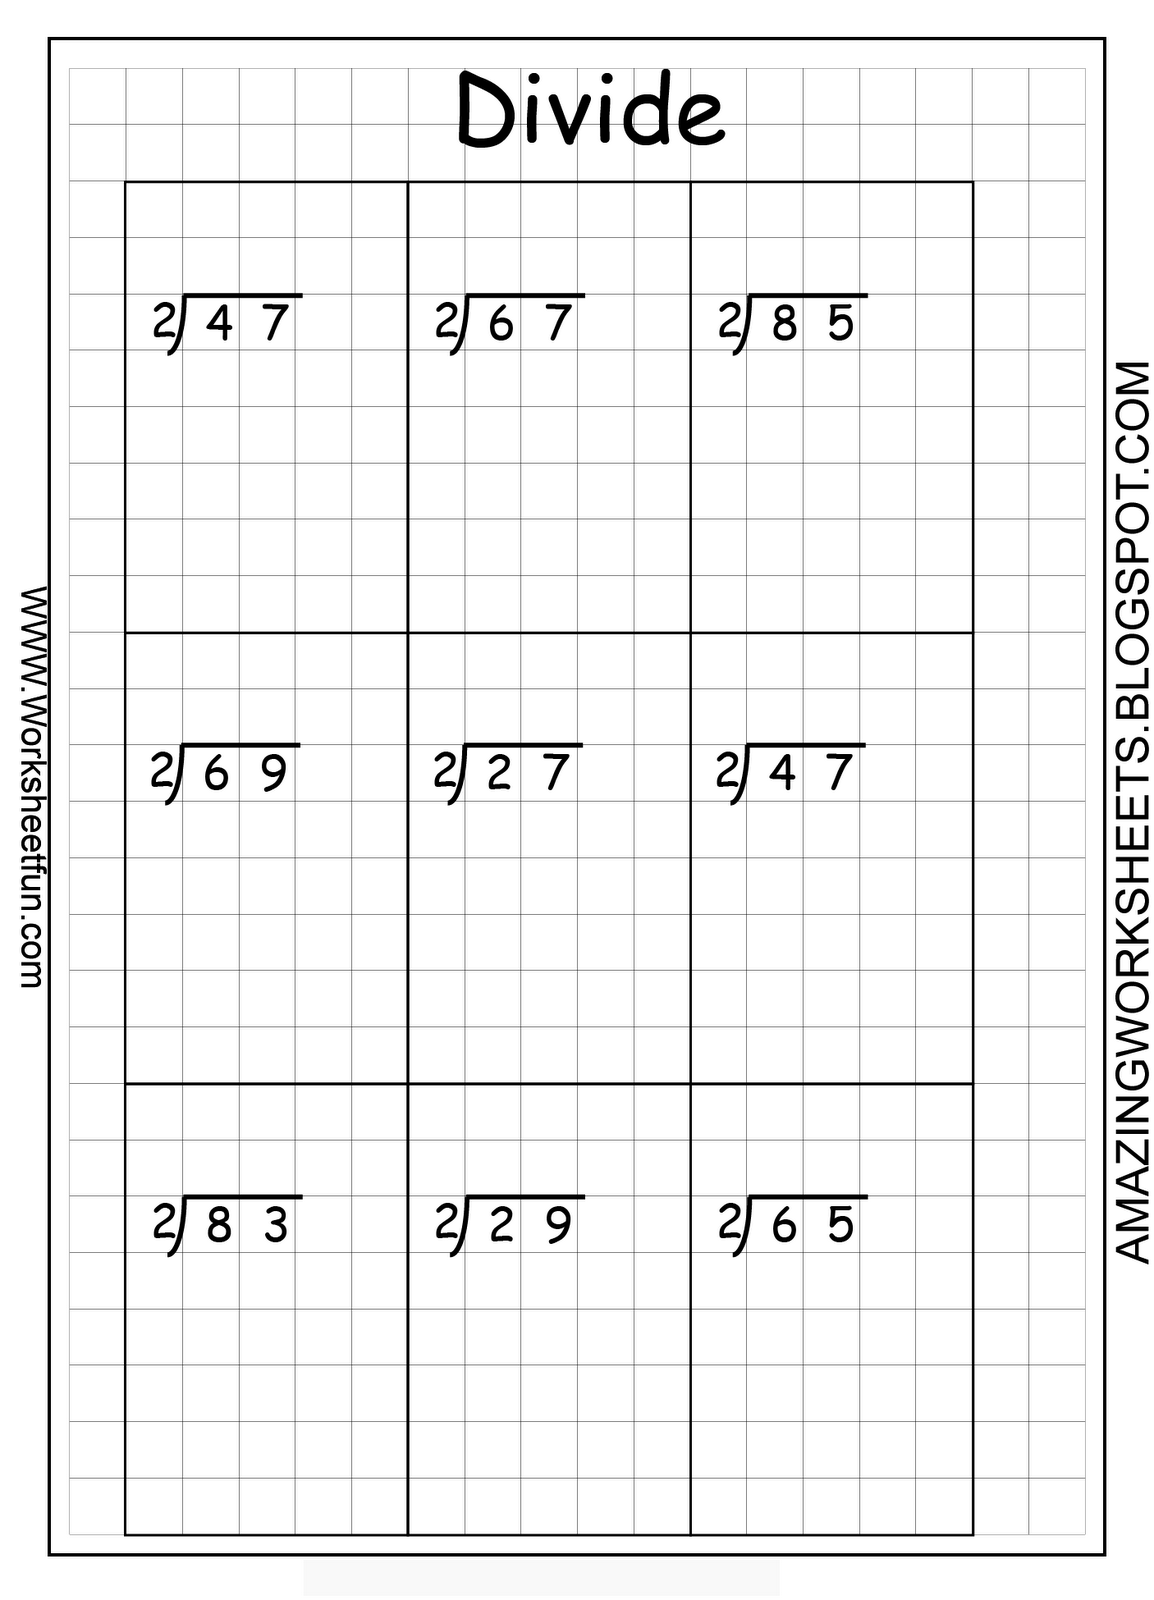 long division Division worksheets, Long division, Long